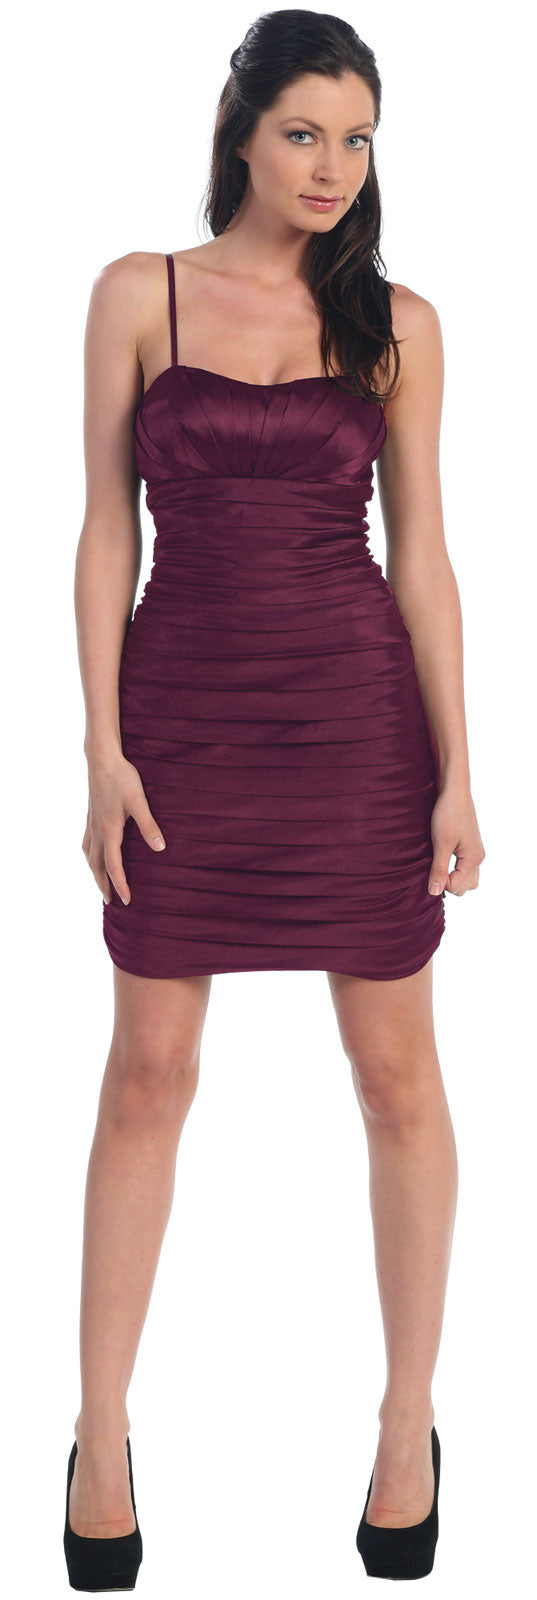 Main image of Spaghetti Straps Pleated Short Party Dress